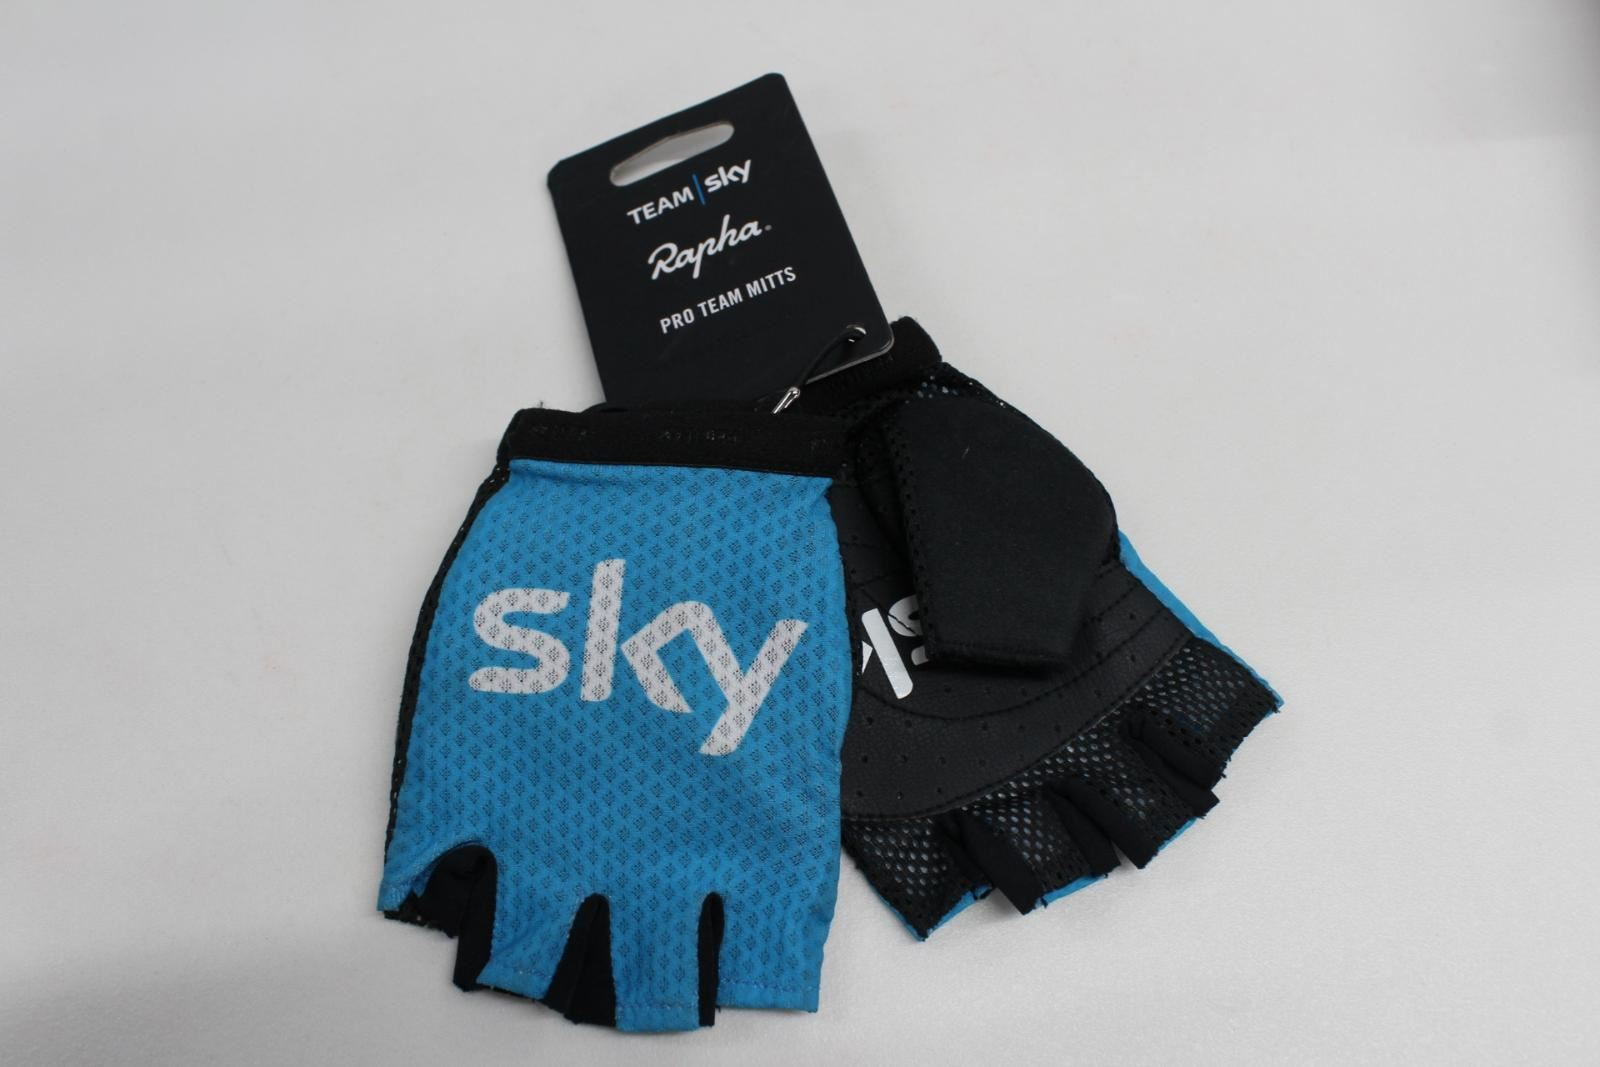 RAPHA-Mens-Sky-Pro-Team-Cycling-Mitts-Blue-Fingerless-Size-Extra-Small-NEW